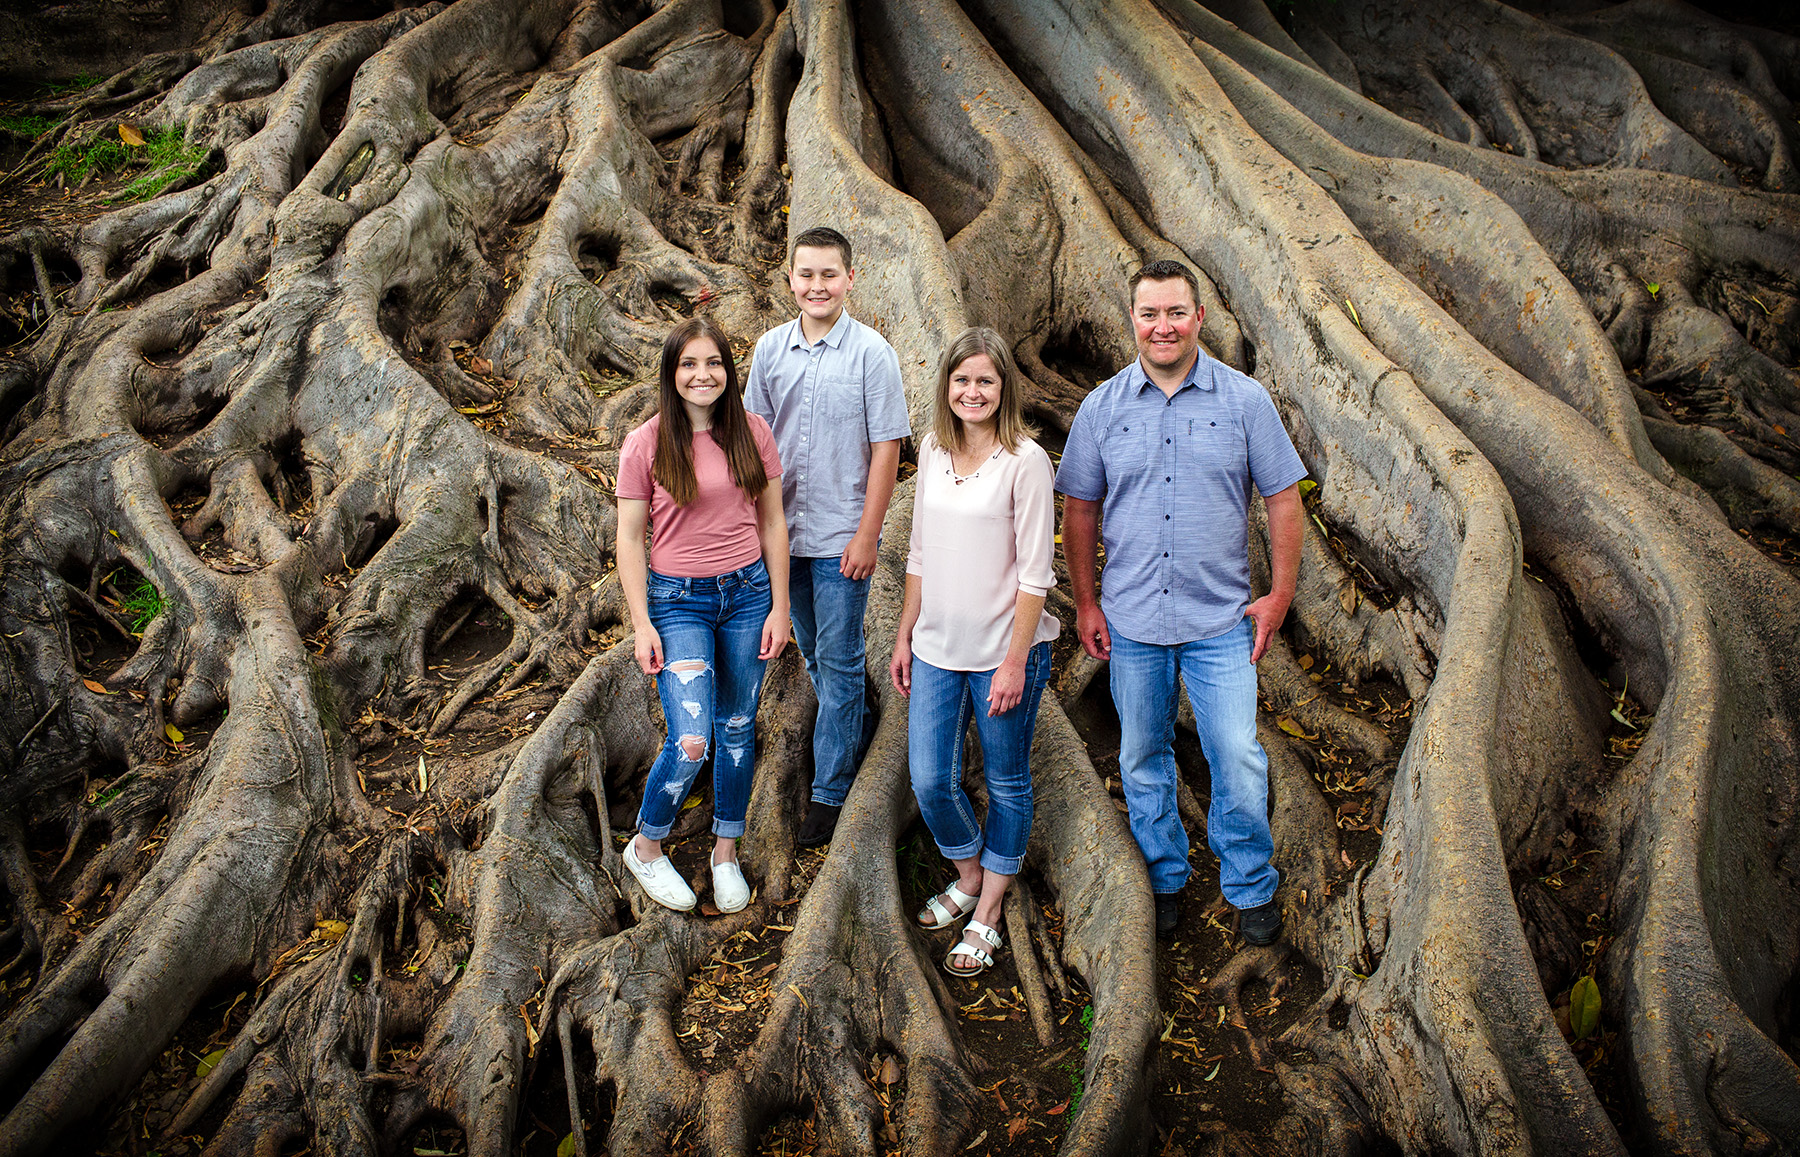 family portrait at Balboa Parks Giant Fig tree, the people love being here